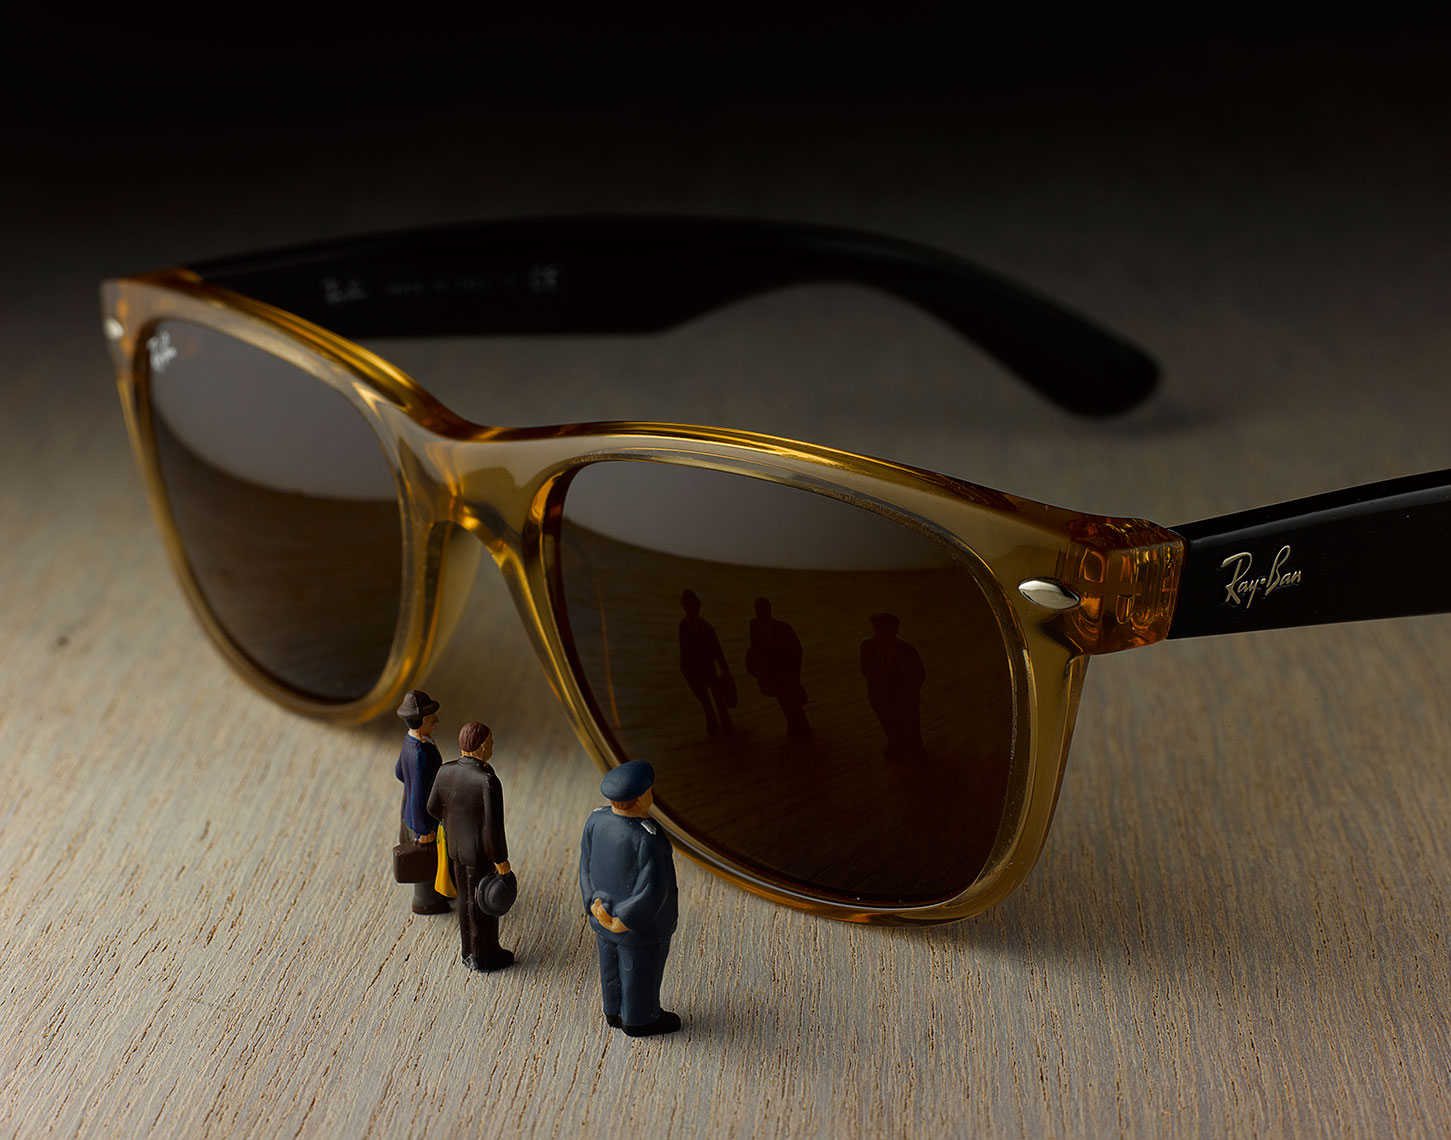 120628_Miniatures_Sunglasses_RT-DUP.jpg